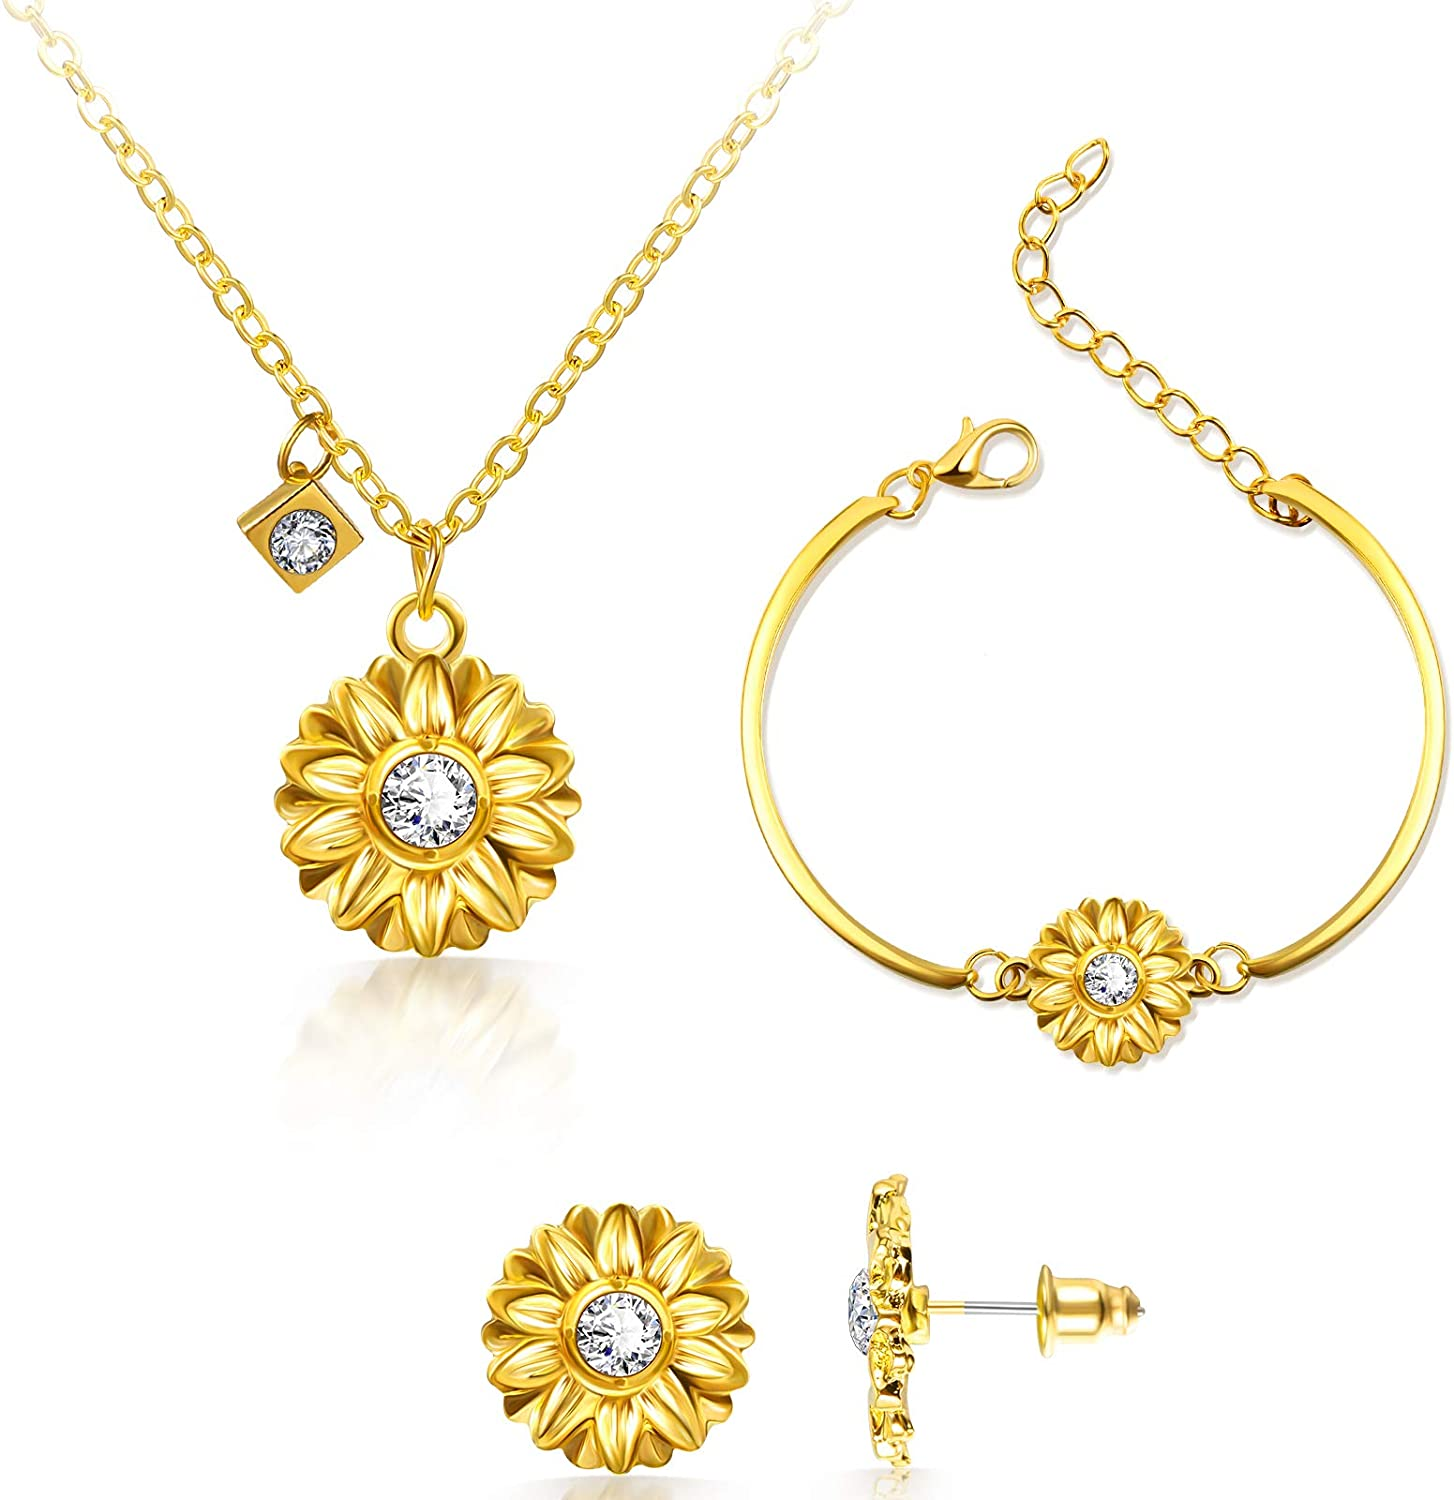 Yaomiao Sunflower Jewelry Accessories Set, Include Adjustable Sunflower Pendant Necklace Bracelets and Stud Earrings for Women Friends Friendship Valentine's Day Christmas Supplies